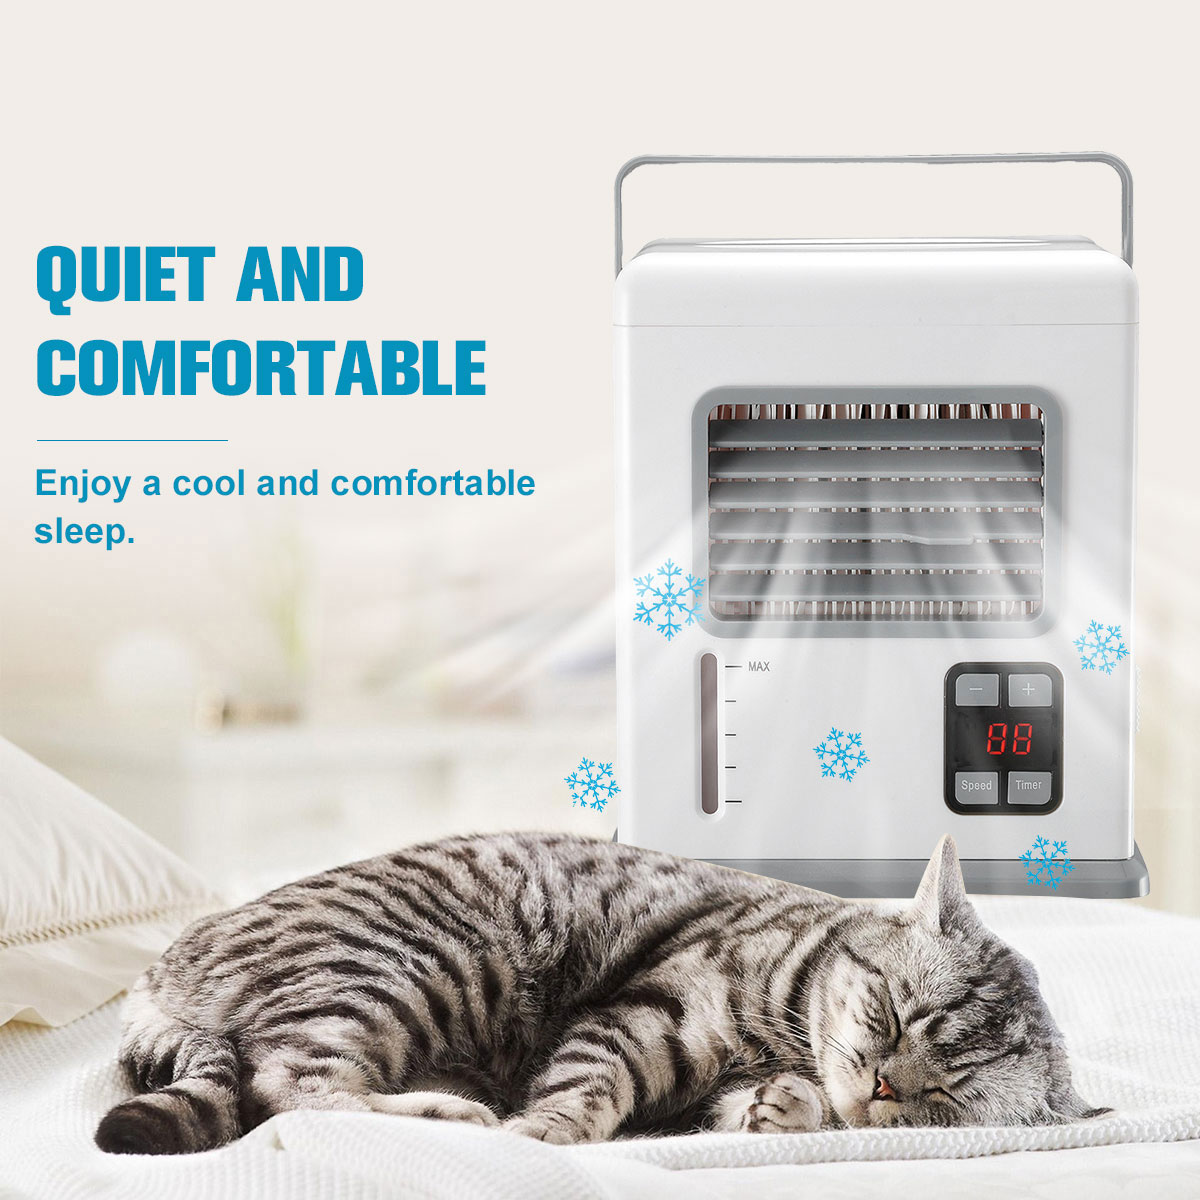 Portable Handheld Air Conditioner Conditioning Rechargeable USB Mini Air Cooler Digital Display Air Cooling Fan For Office Home